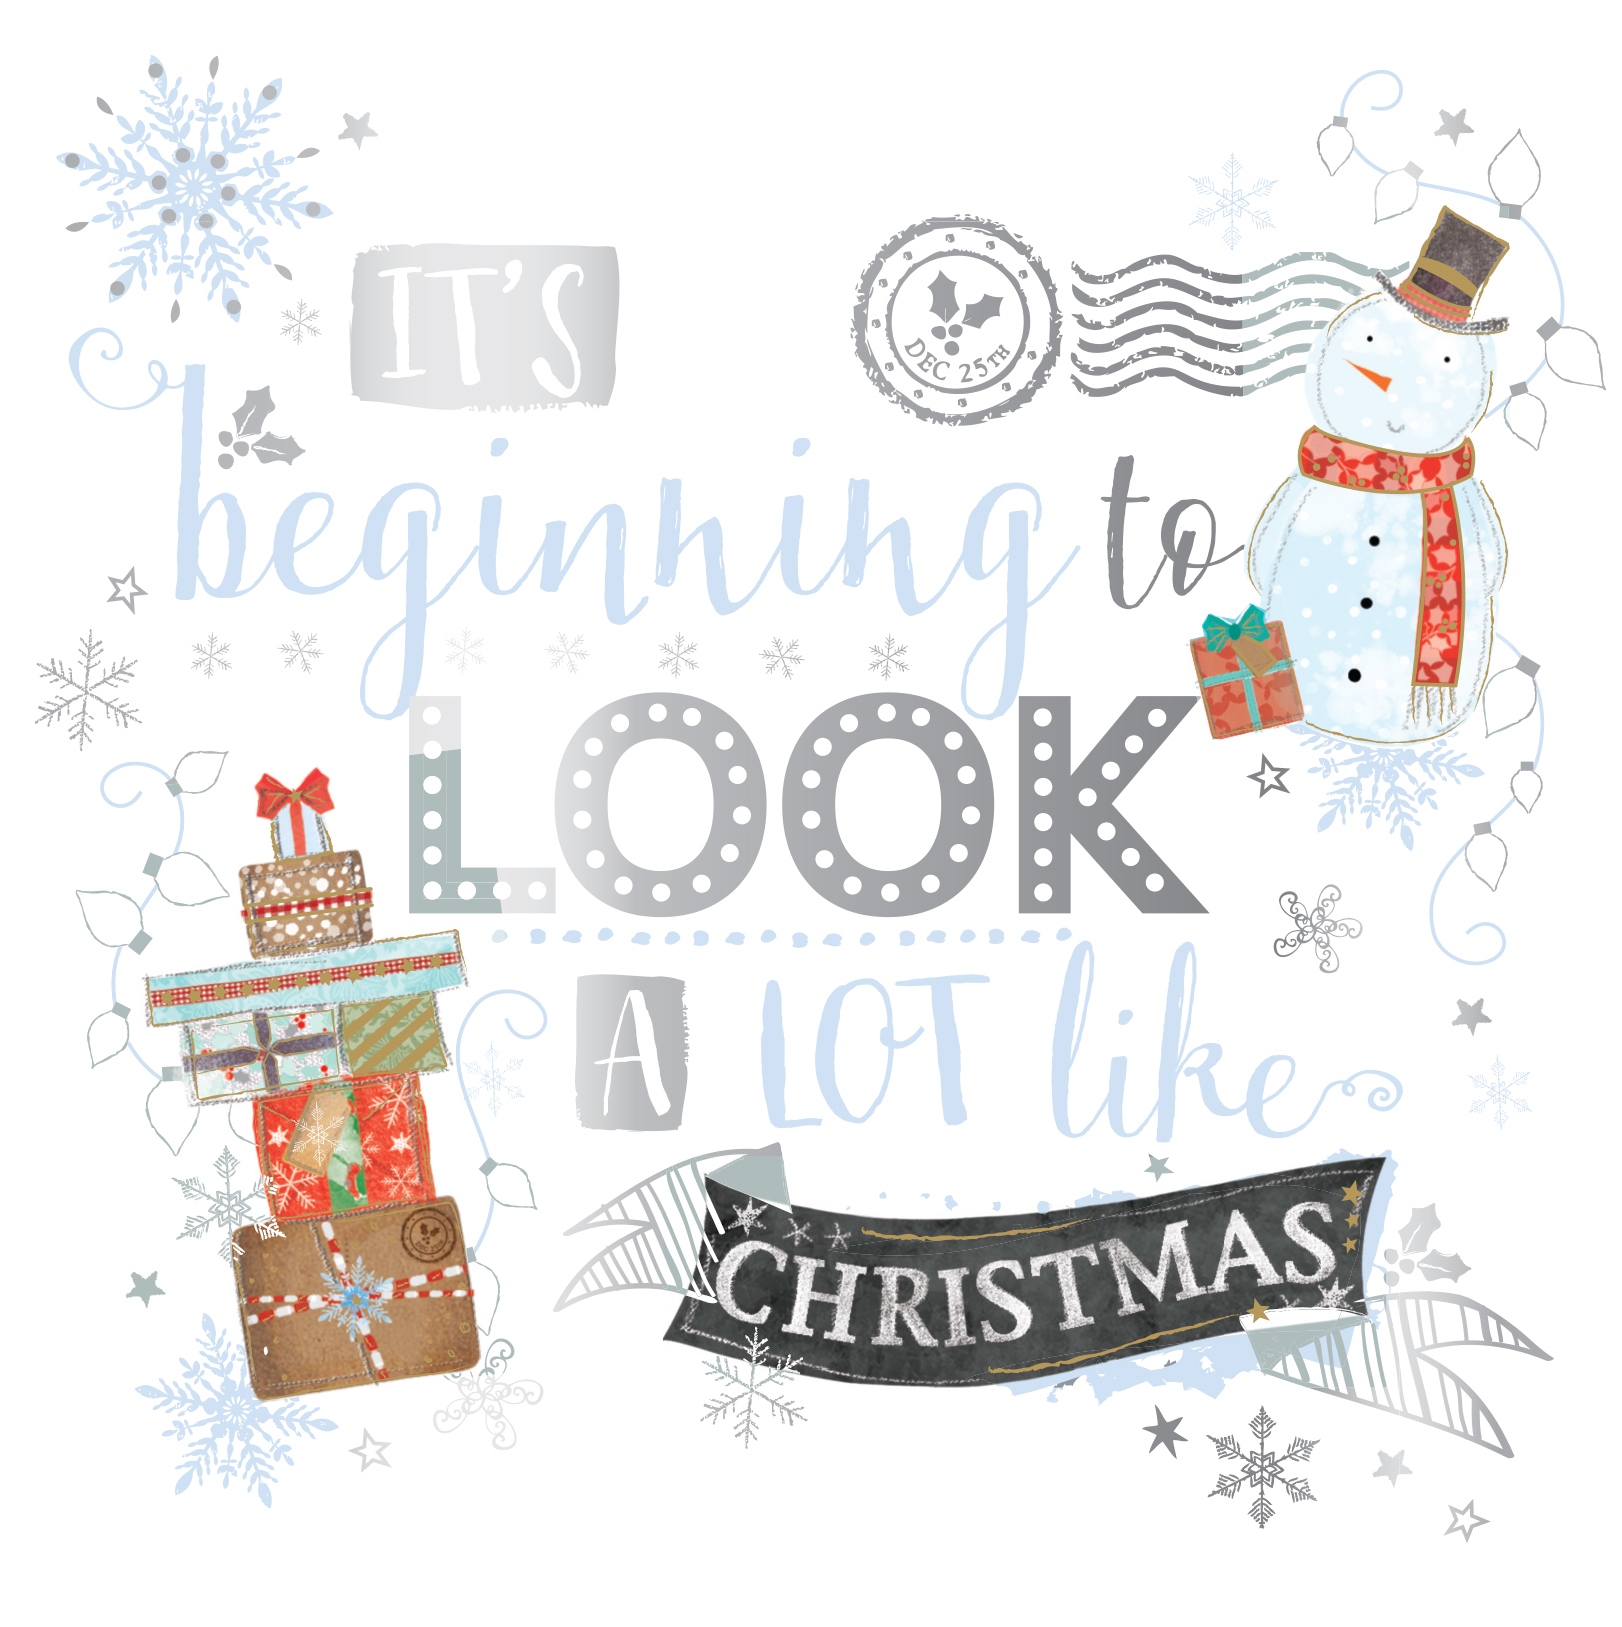 Text reads - It's Beginning to Look a Lot Like Christmas